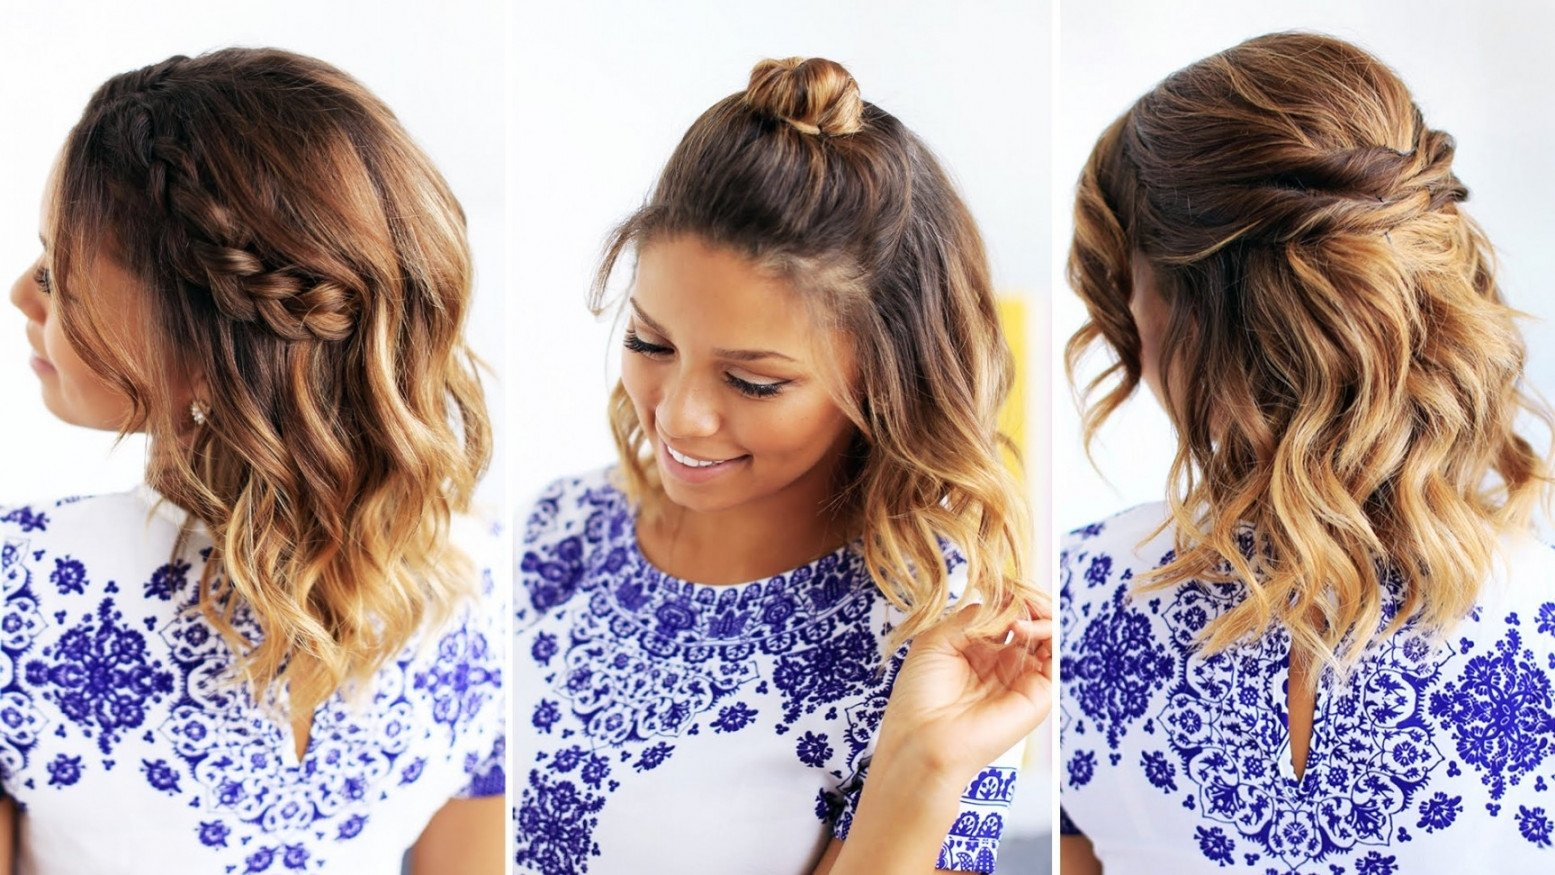 10 Elegant Cute Ideas For Short Hair pictures of cute hairstyles for short hair hairstyle getty